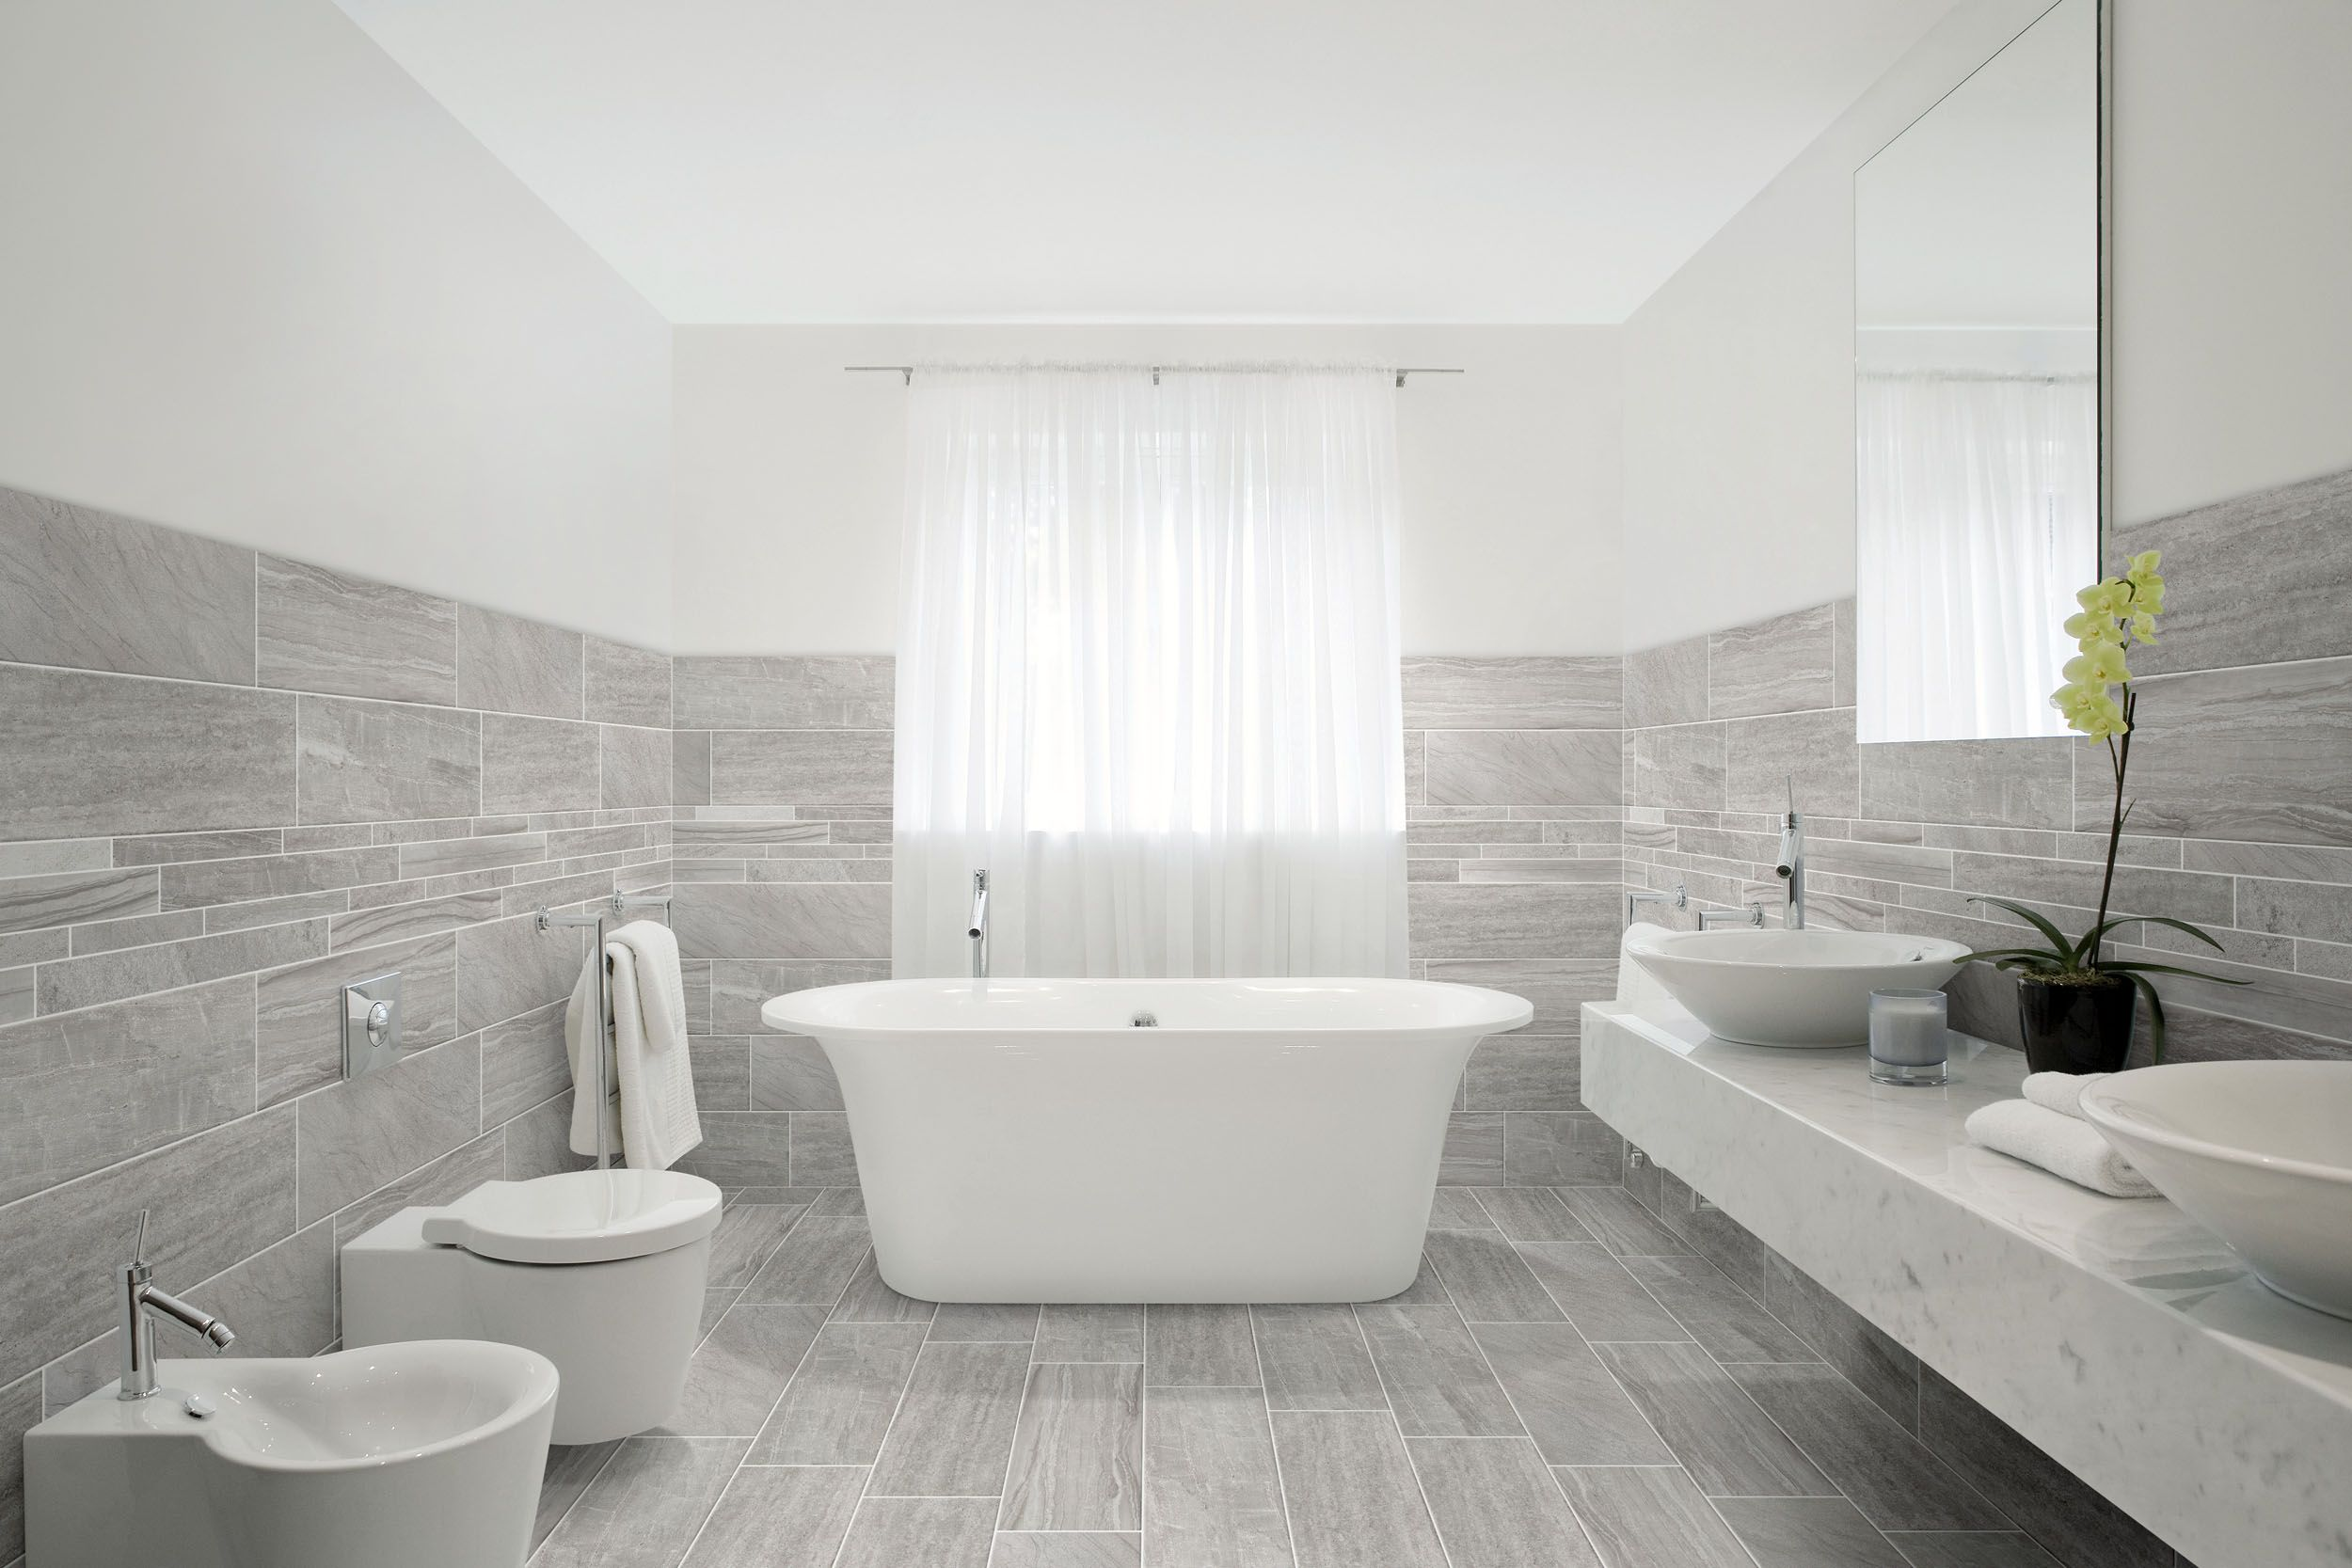 Porcelain Tile With Mixed Look of Wood, Stone and Concrete From ...